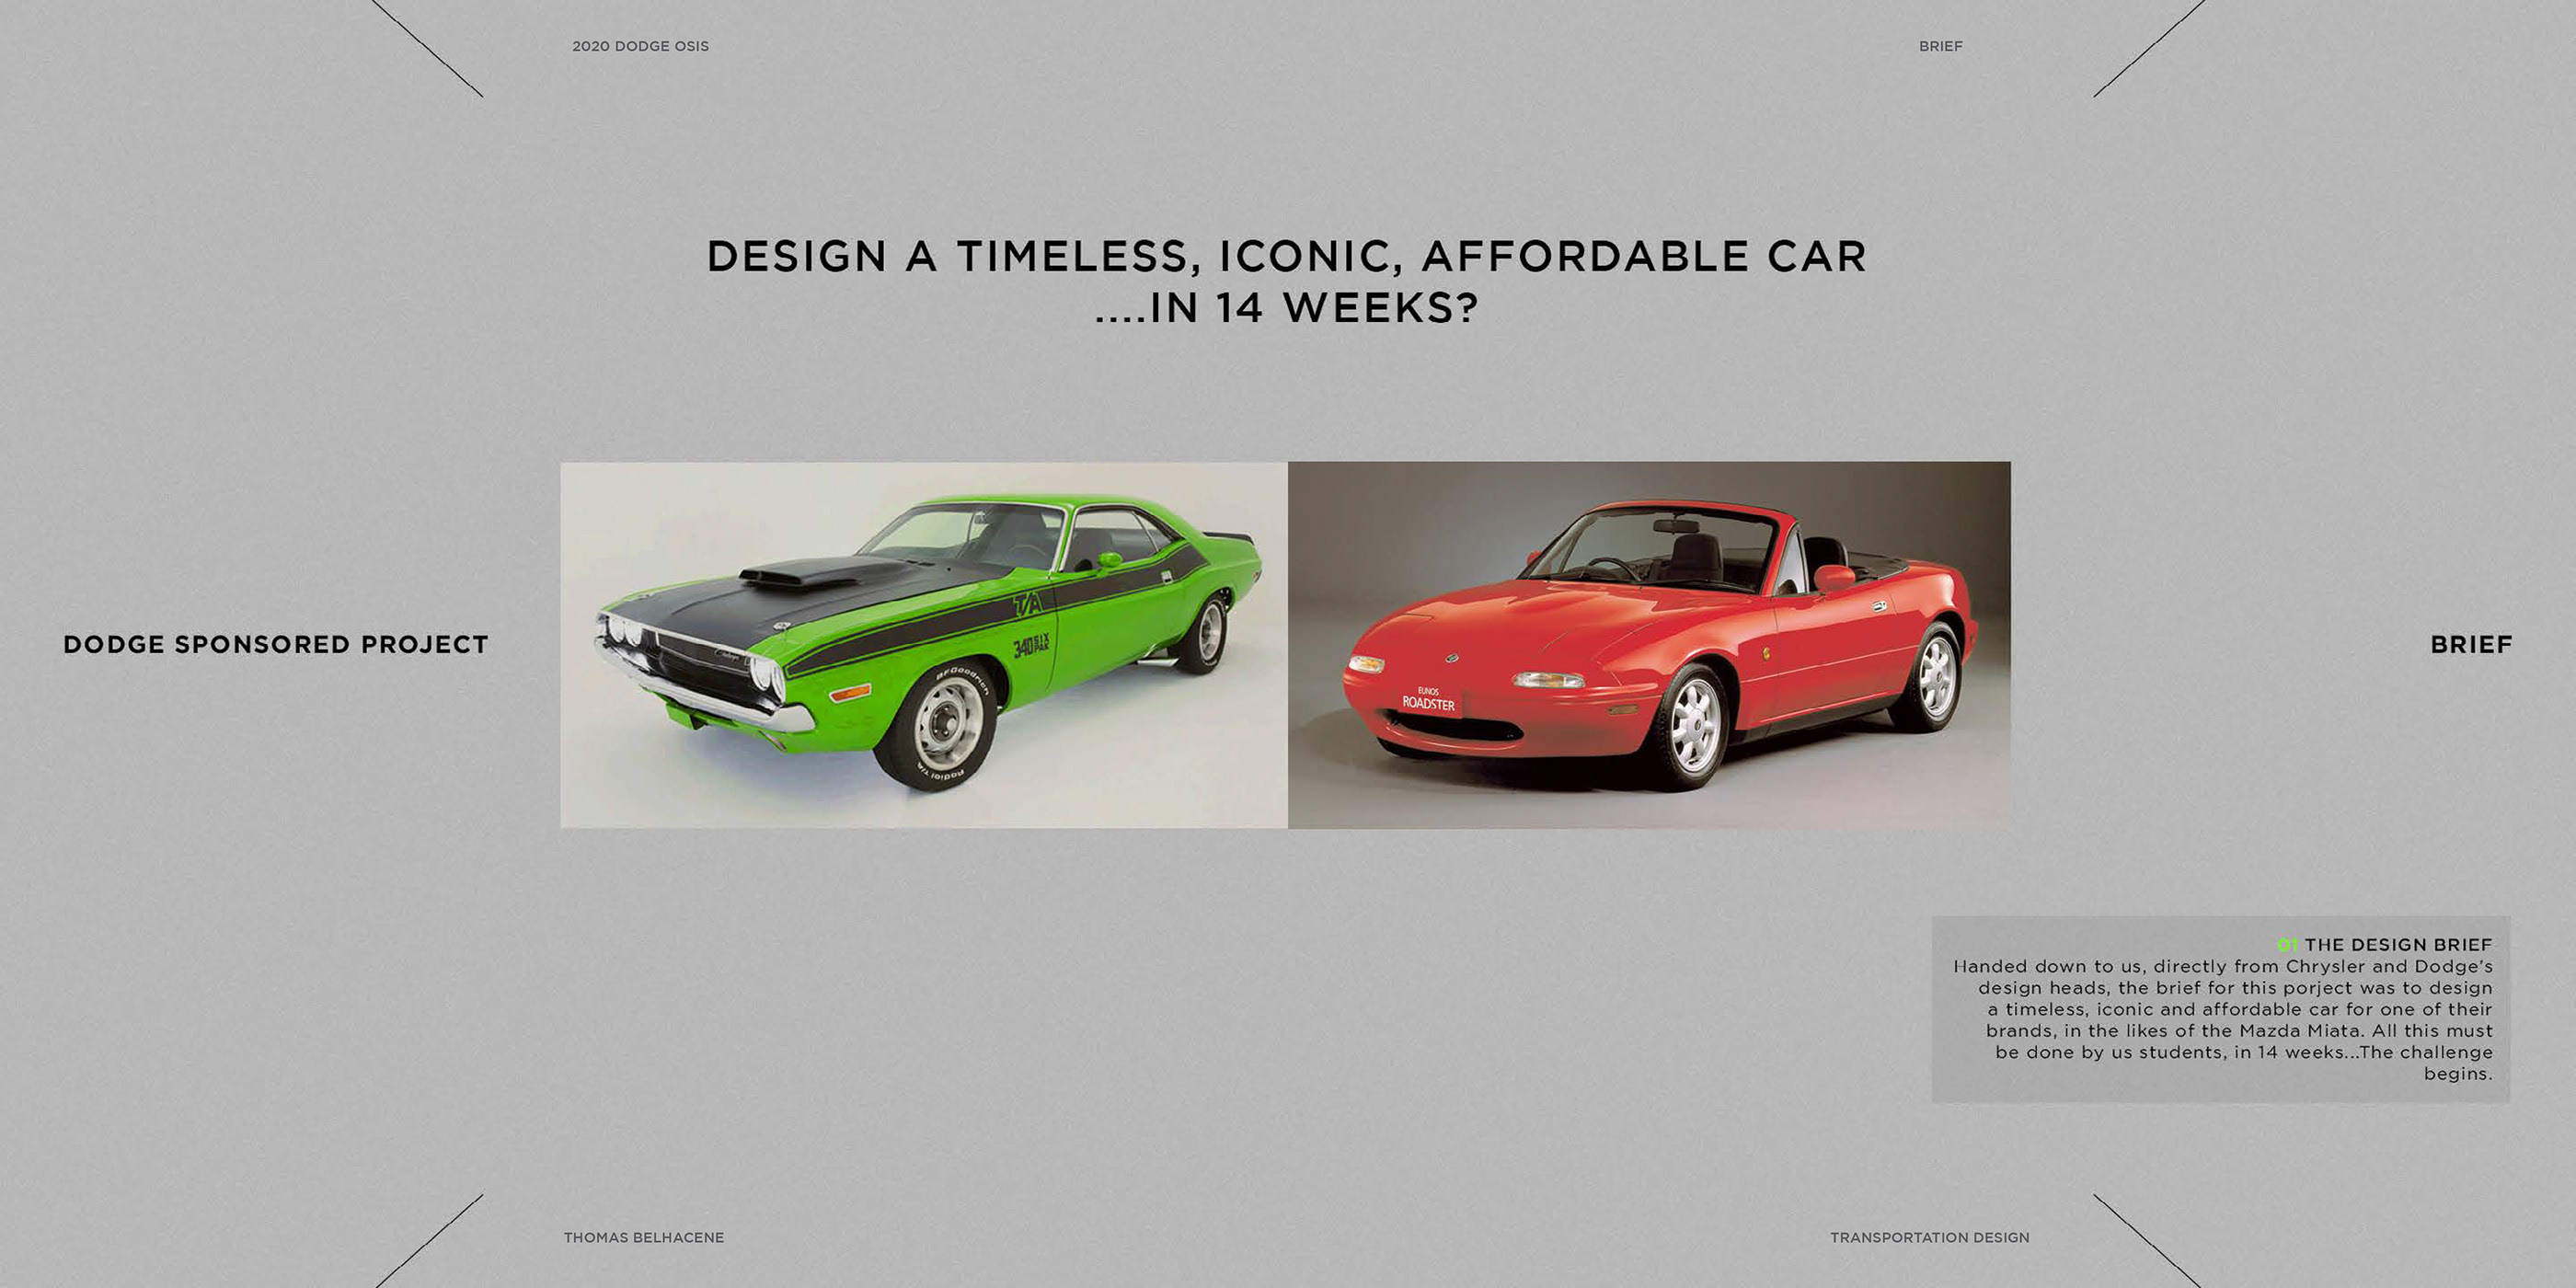 2020 DODGE OSIS on Behance